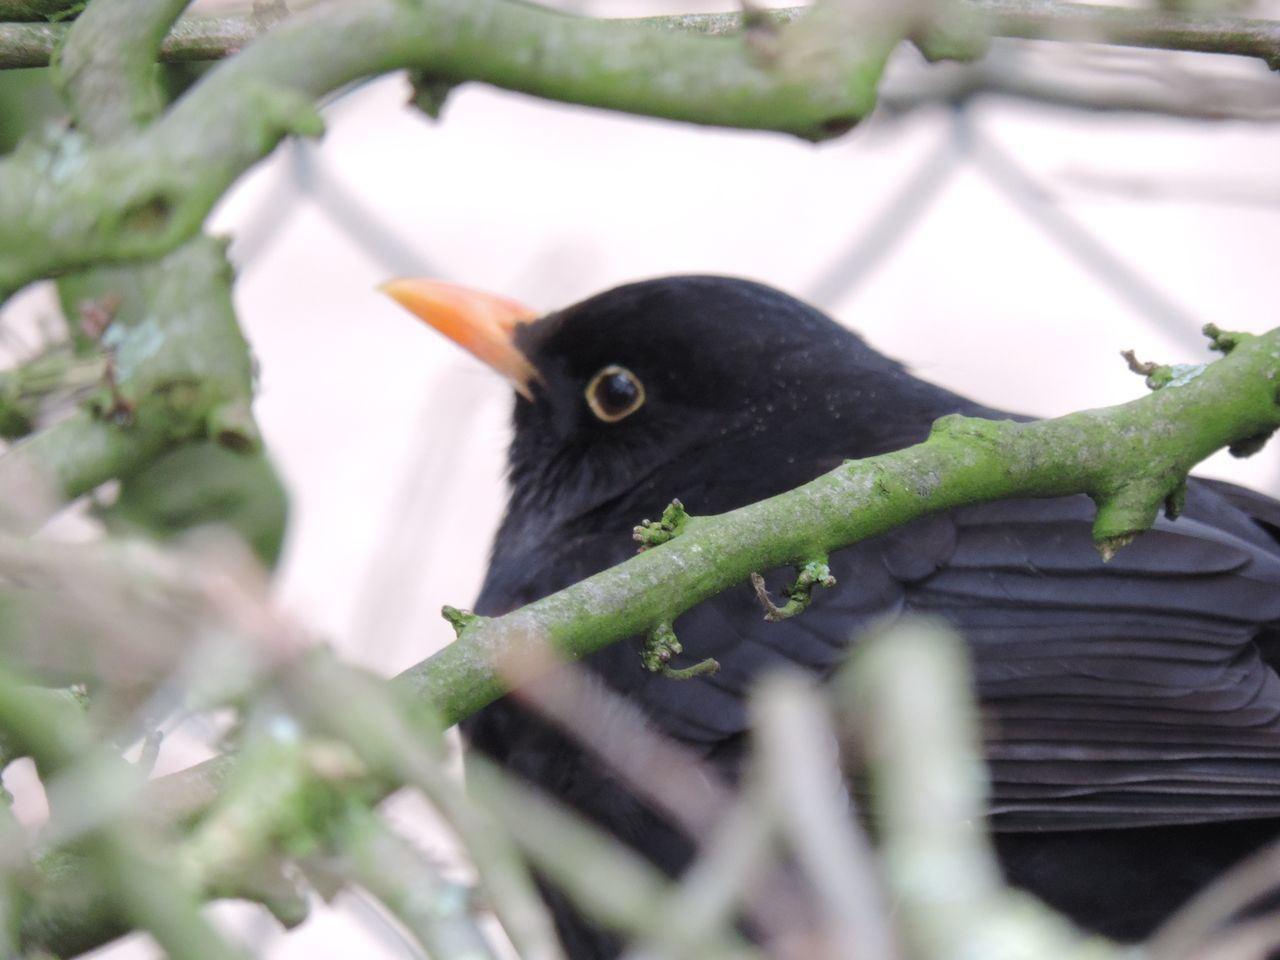 Amsel Animal Themes Animal Wildlife Animals In The Wild Beak Bird Bird Photography Birds Black Bird Black Eyes Branch Close-up Day Fat Bird Hidden Mammal Nature Nest No People One Animal Outdoors Perching Tree Vogel Wood